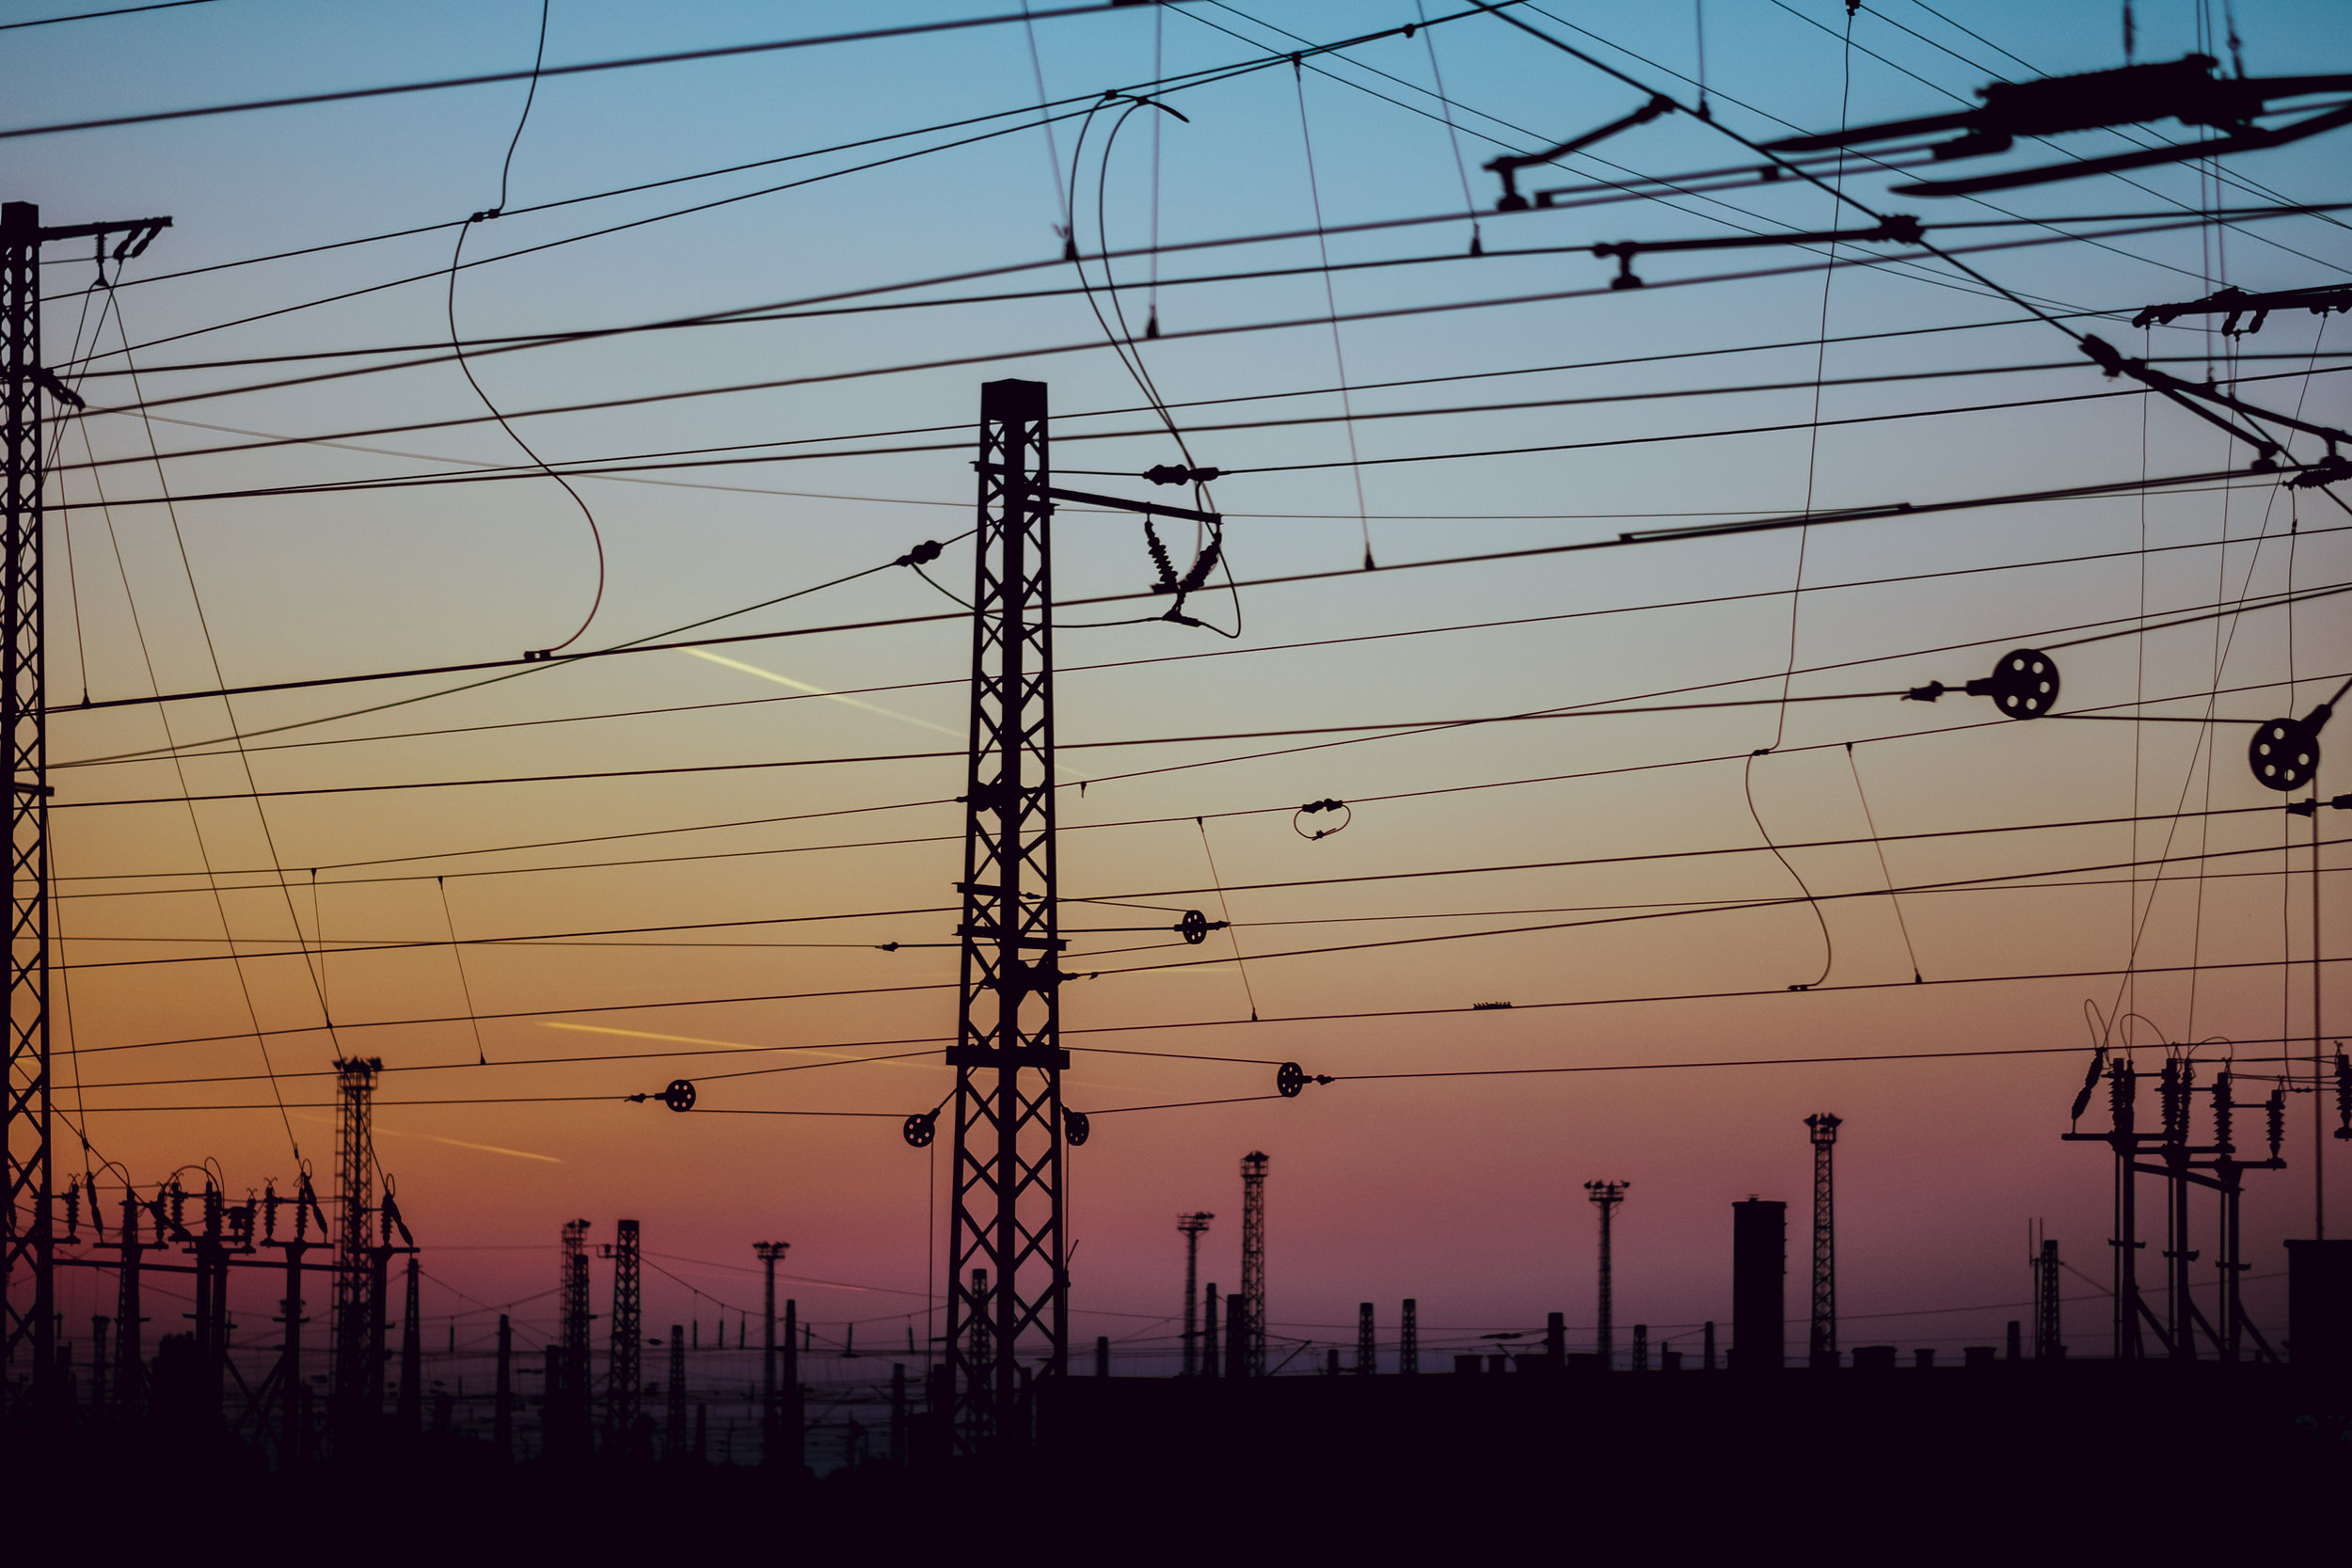 Wires in sunset